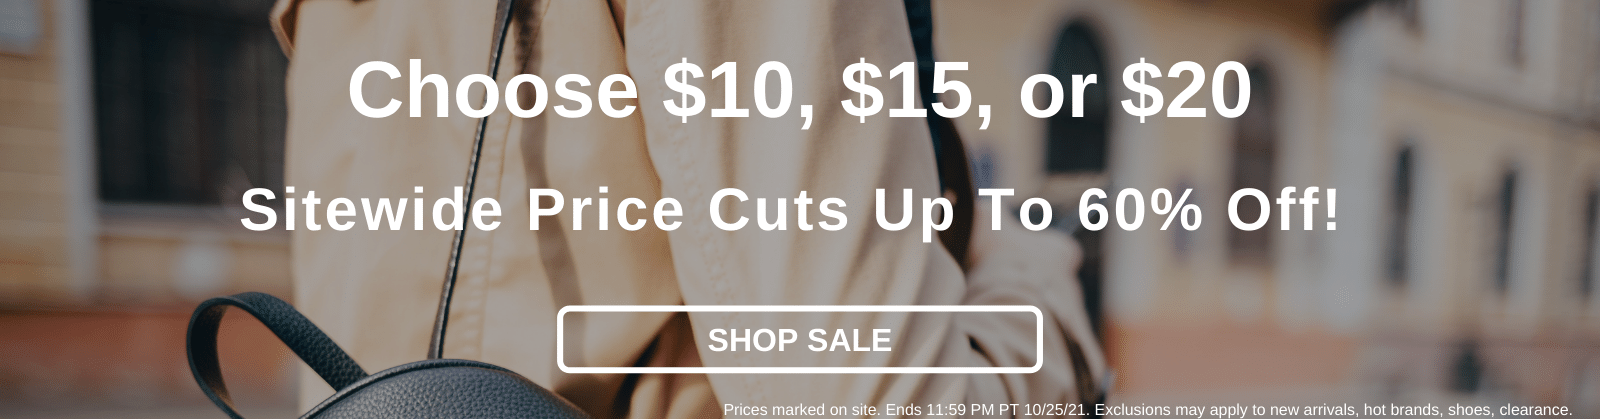 Choose $10, $15, or $20 Sitewide Price Cuts Up To 60% Off! [Shop Now]